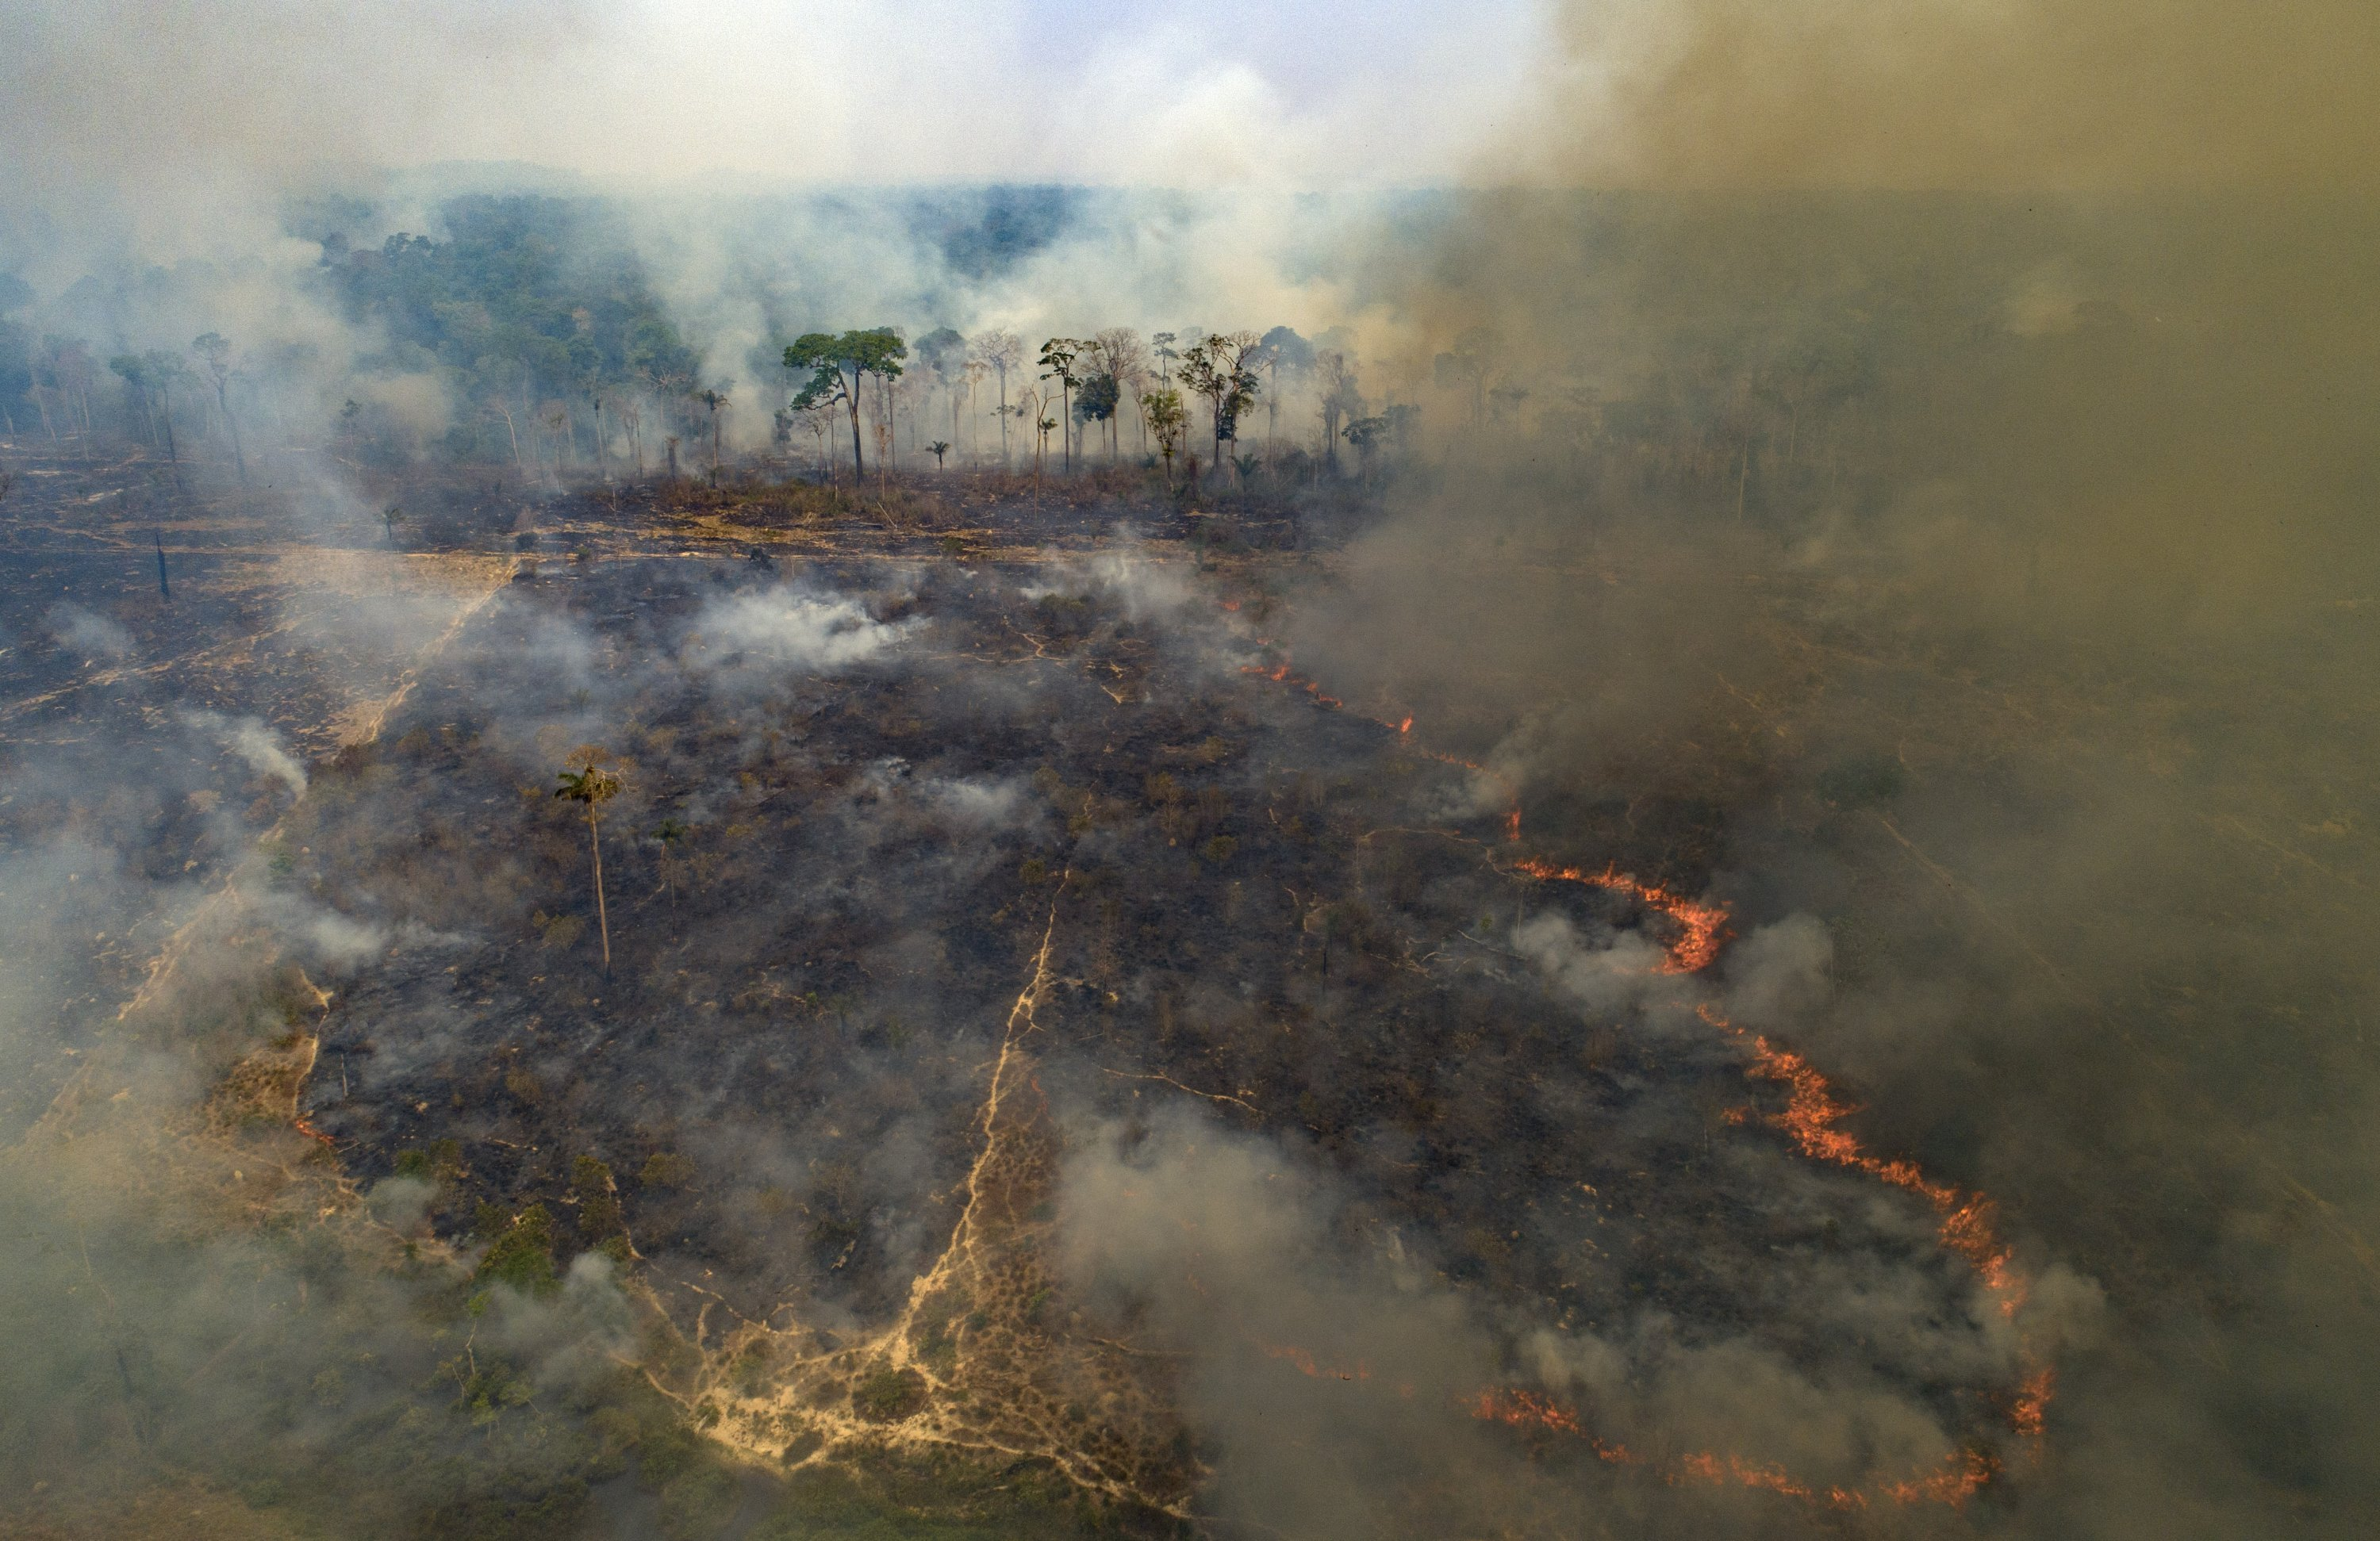 Fire consumes land deforested by cattle farmers near Novo Progresso, Para state, Brazil, Sunday, Aug. 23, 2020. (AP Photo)